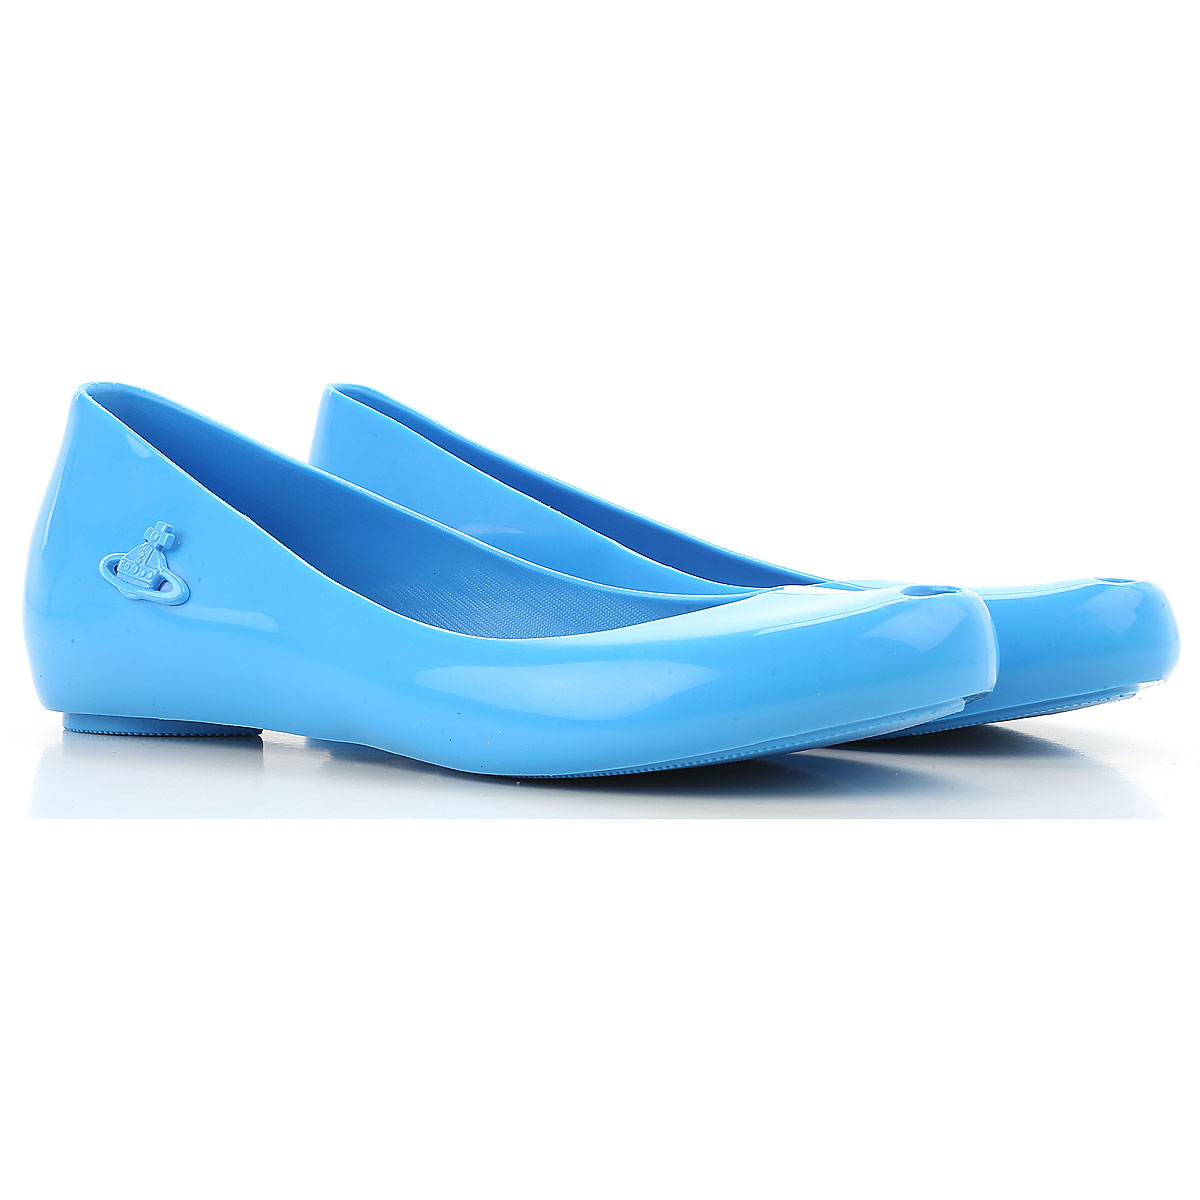 Image of Vivienne Westwood Ballet Flats Ballerina Shoes for Women, Anglomania + Melissa, Azure, PVC, 2017, 11